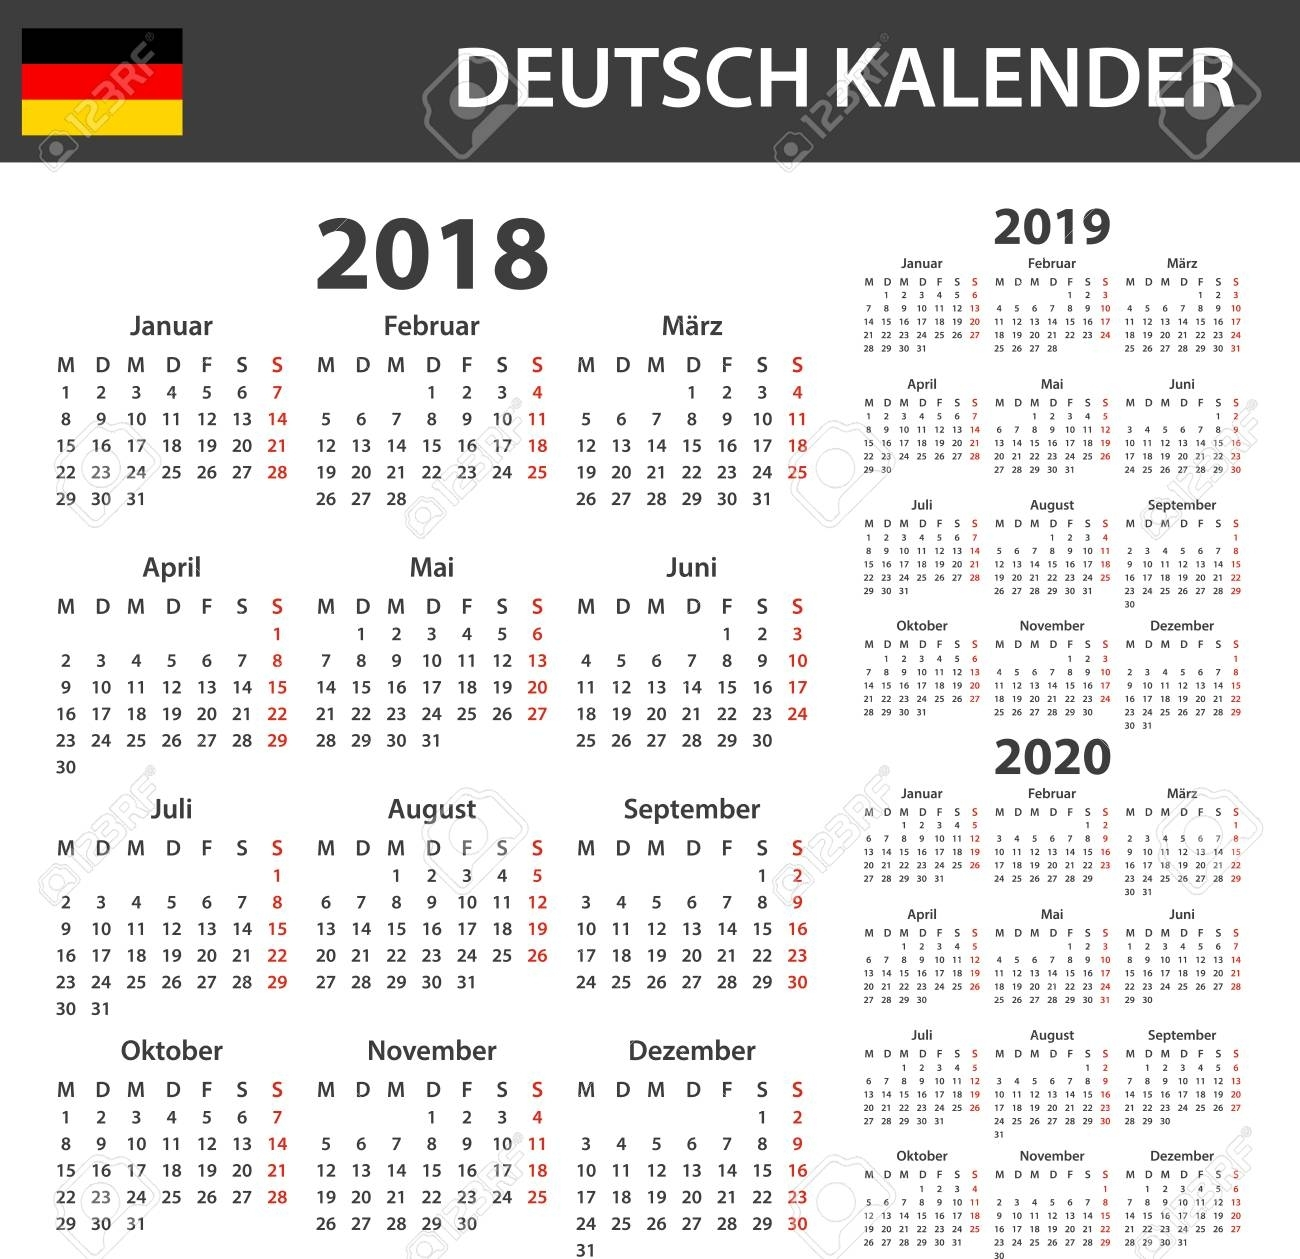 German Calendar For 2018, 2019 And 2020. Scheduler, Agenda Or..